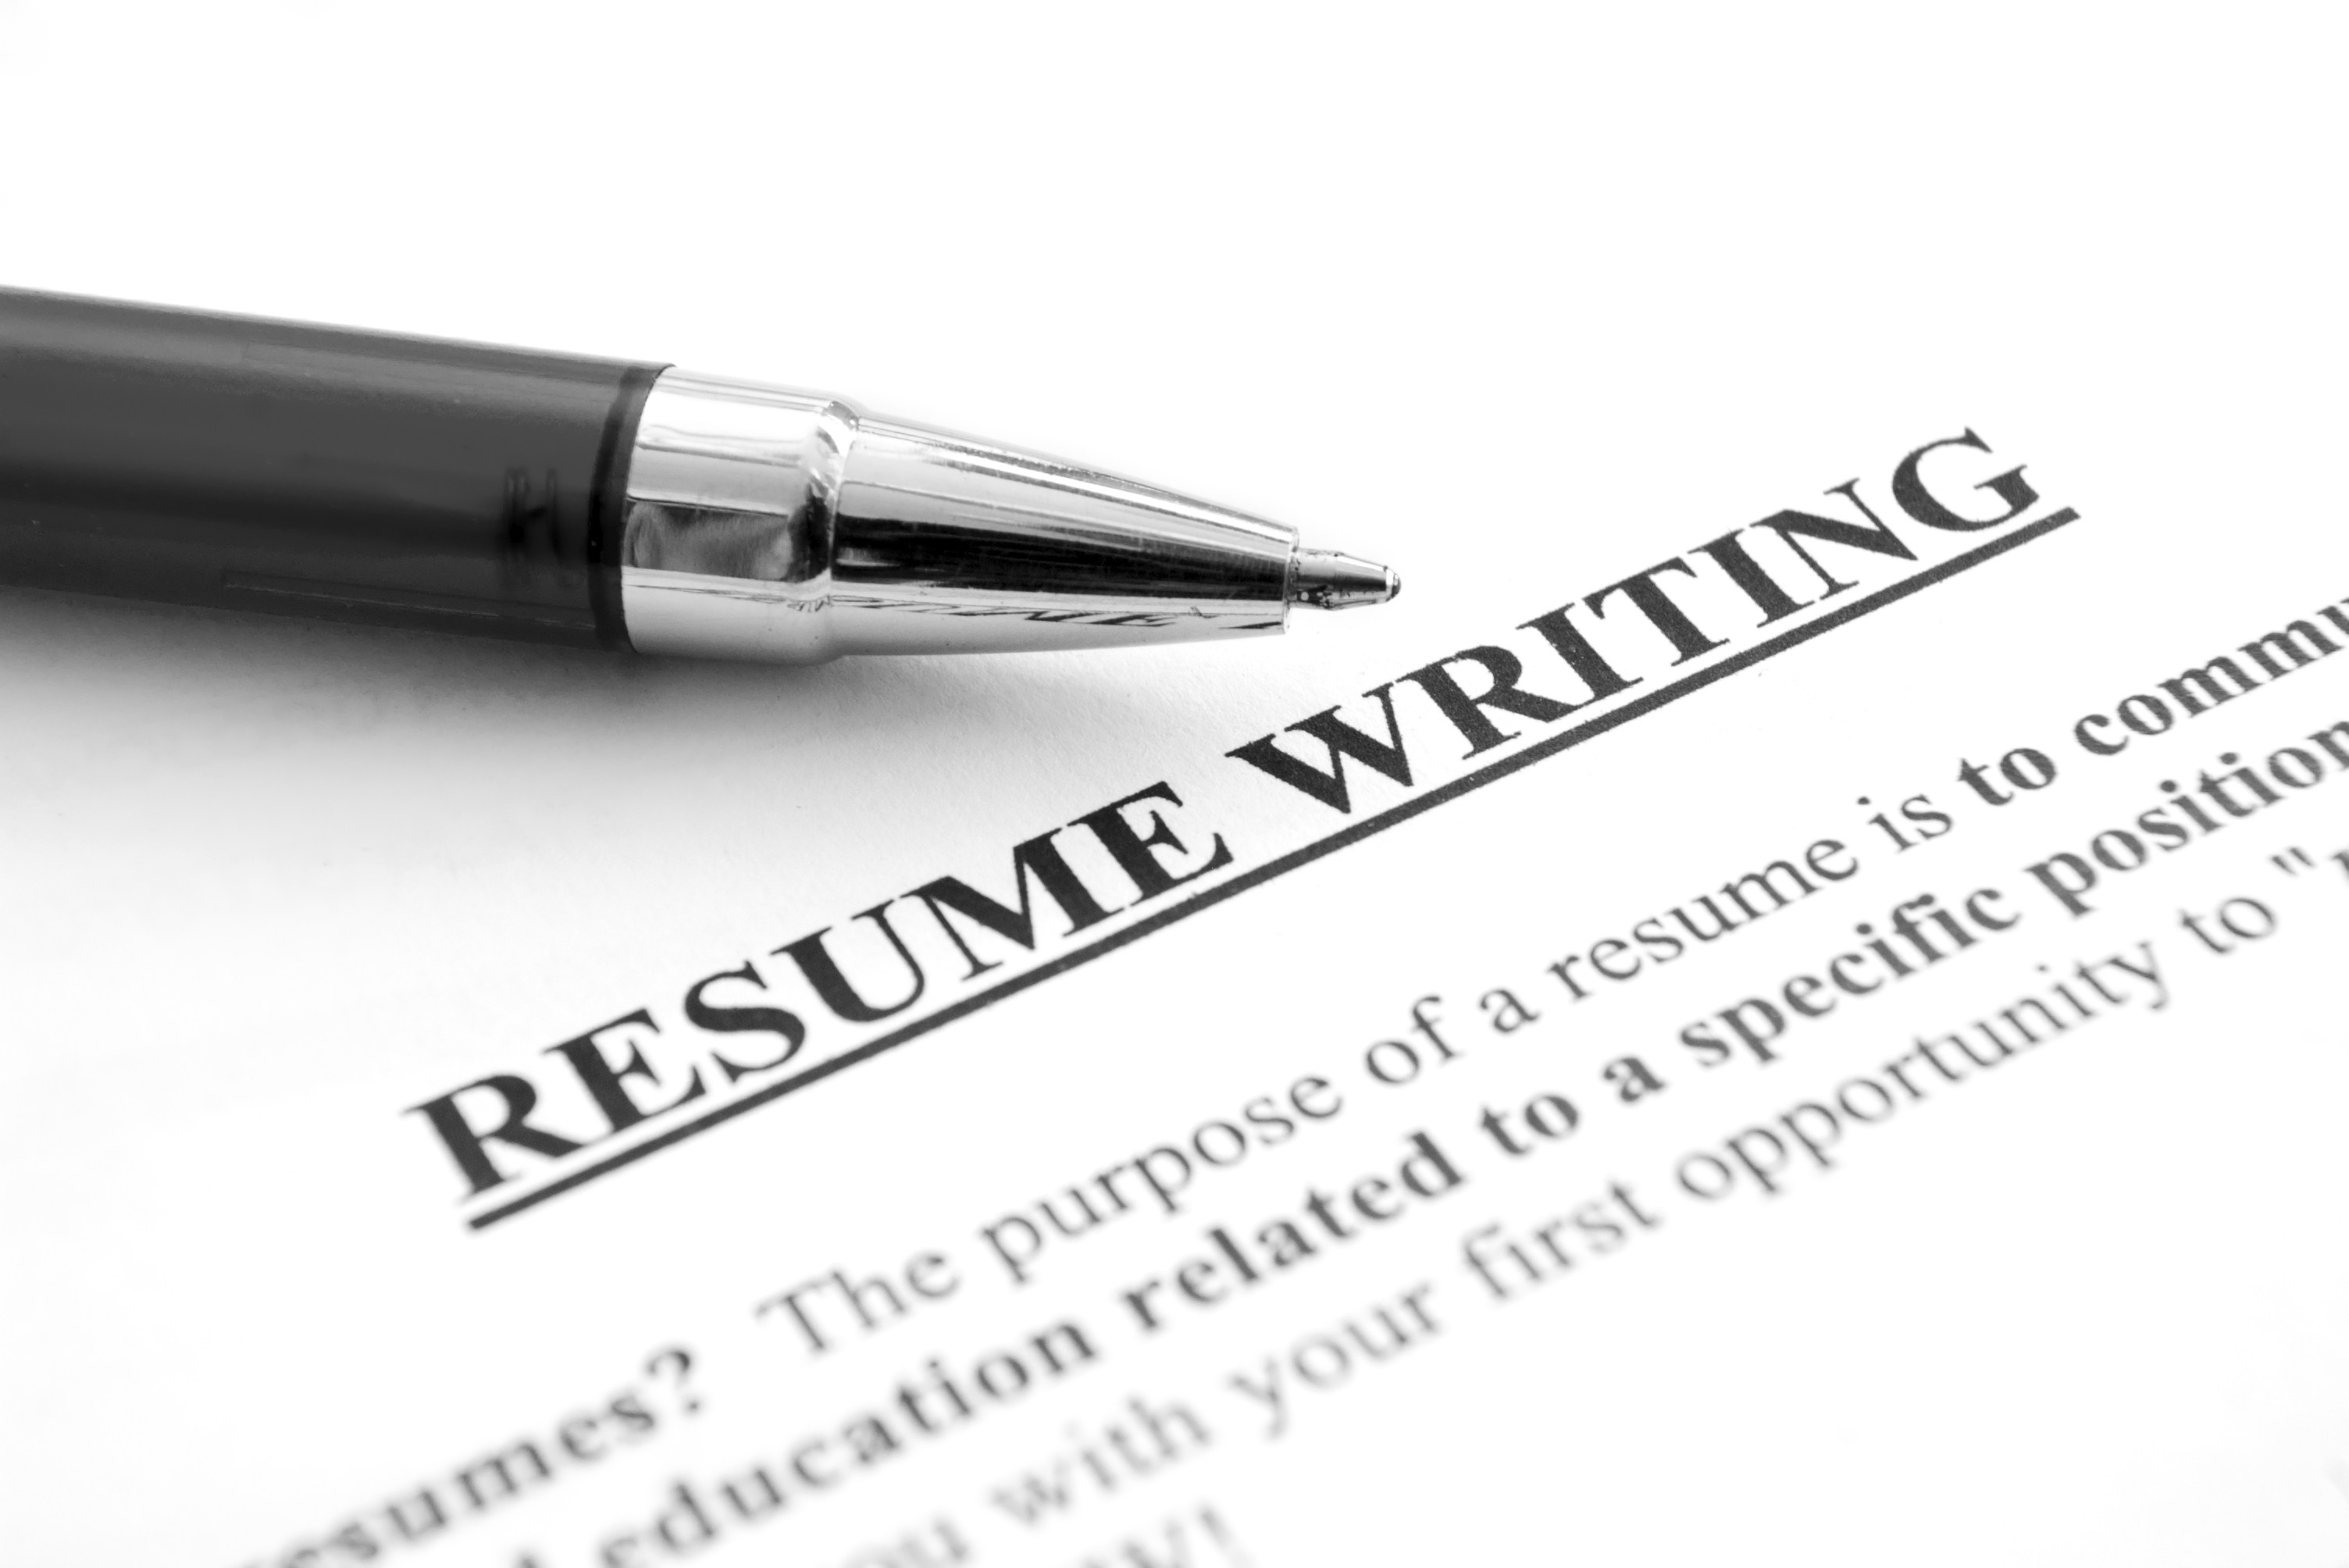 Make your cv's and resumes strong and do all your assignments for a very low price for 5